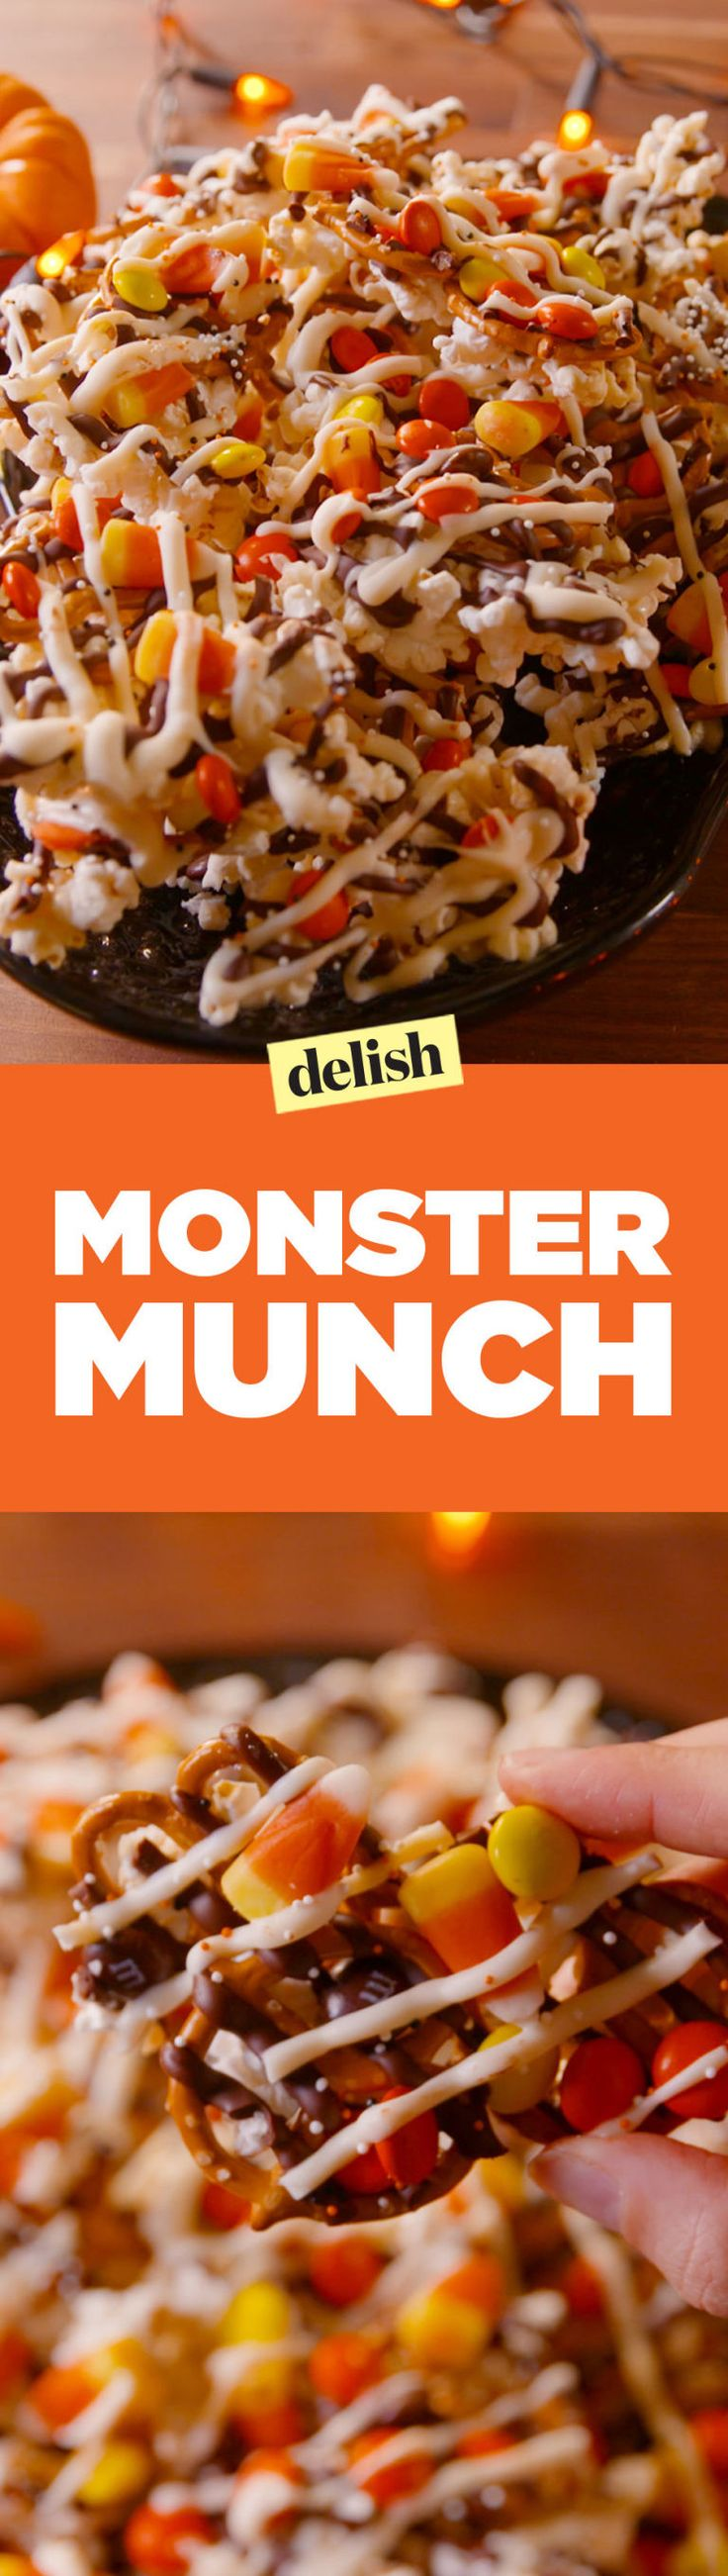 Monster Munch Is The Sweet 'n Salty Snack Your Halloween Needs  - Delish.com